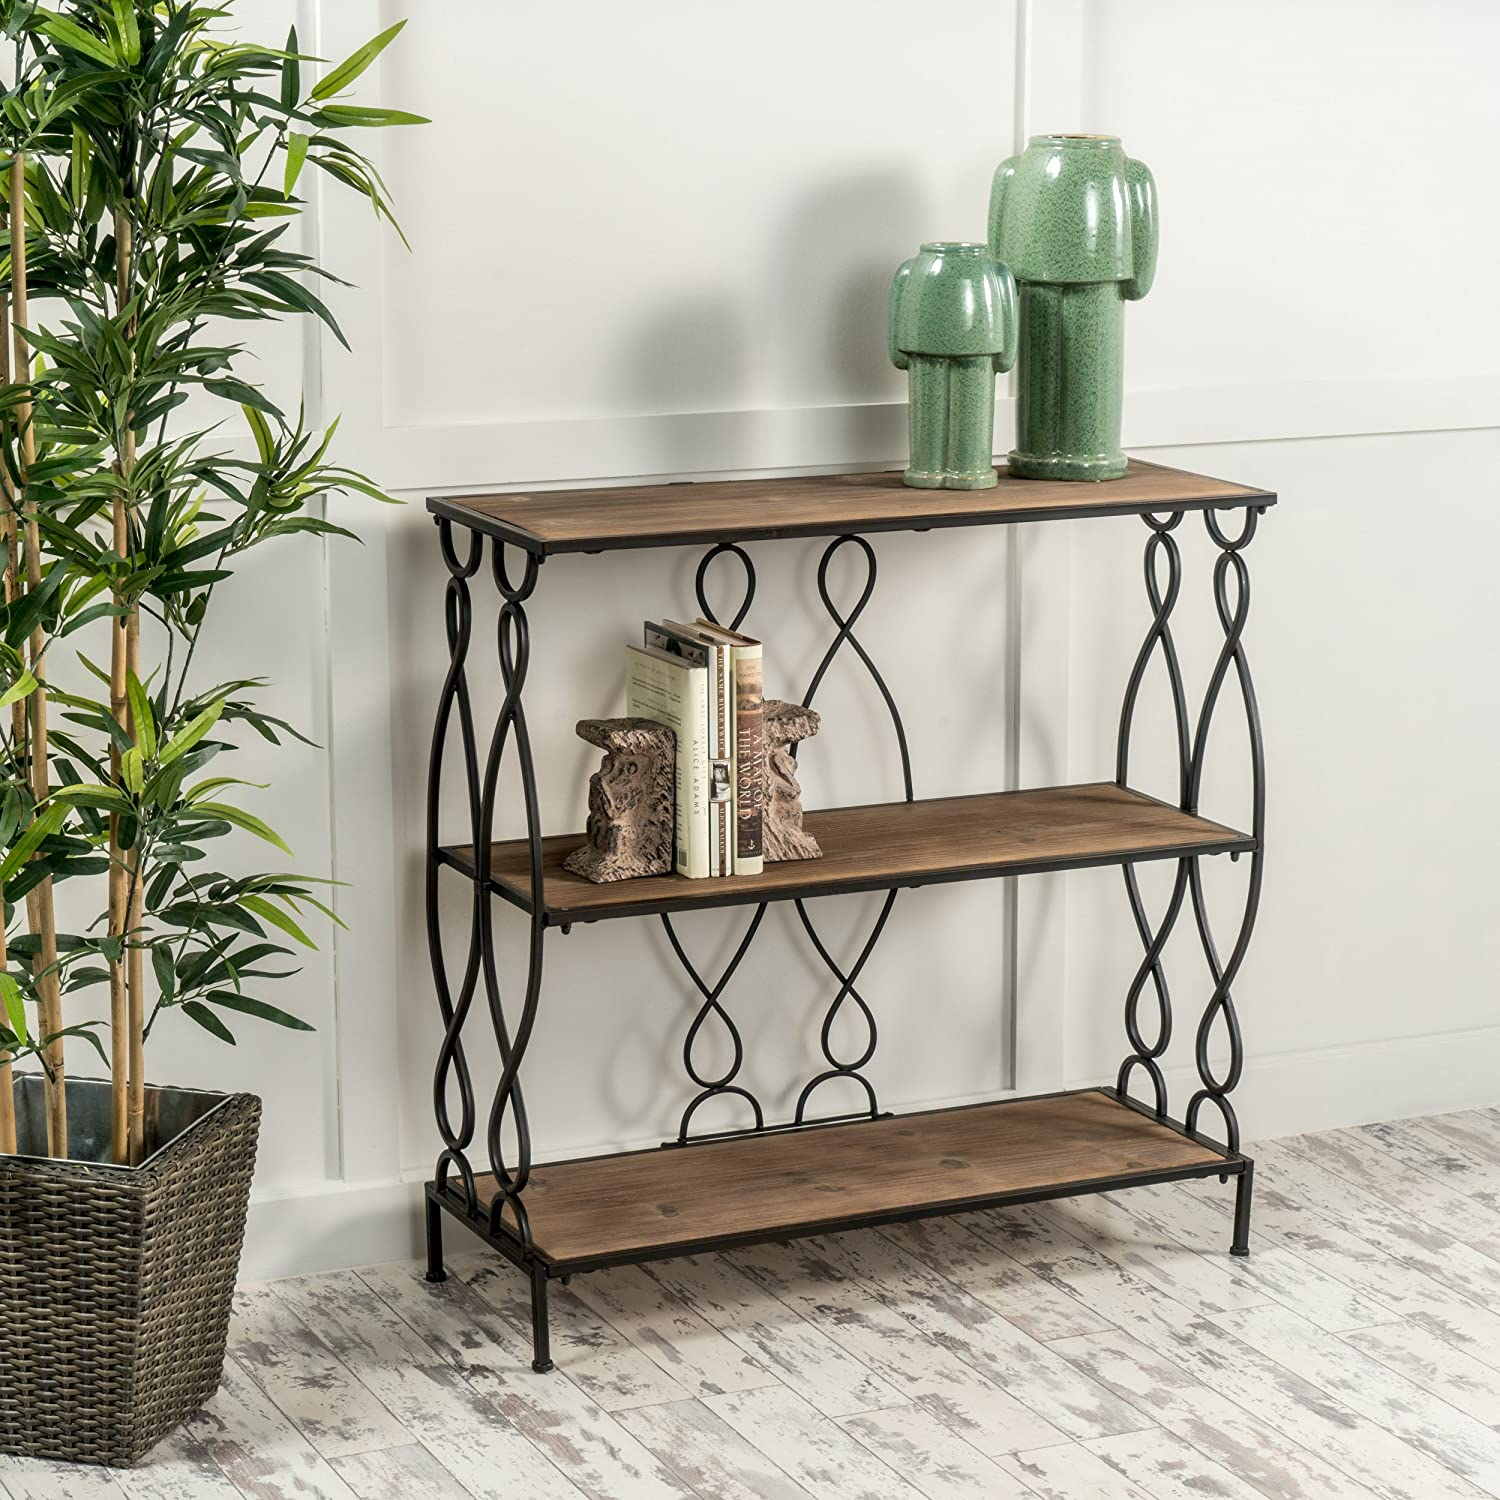 Christopher Knight Home Cabinet, 12.00 D x 33.50 W x 34.00 H, Brown